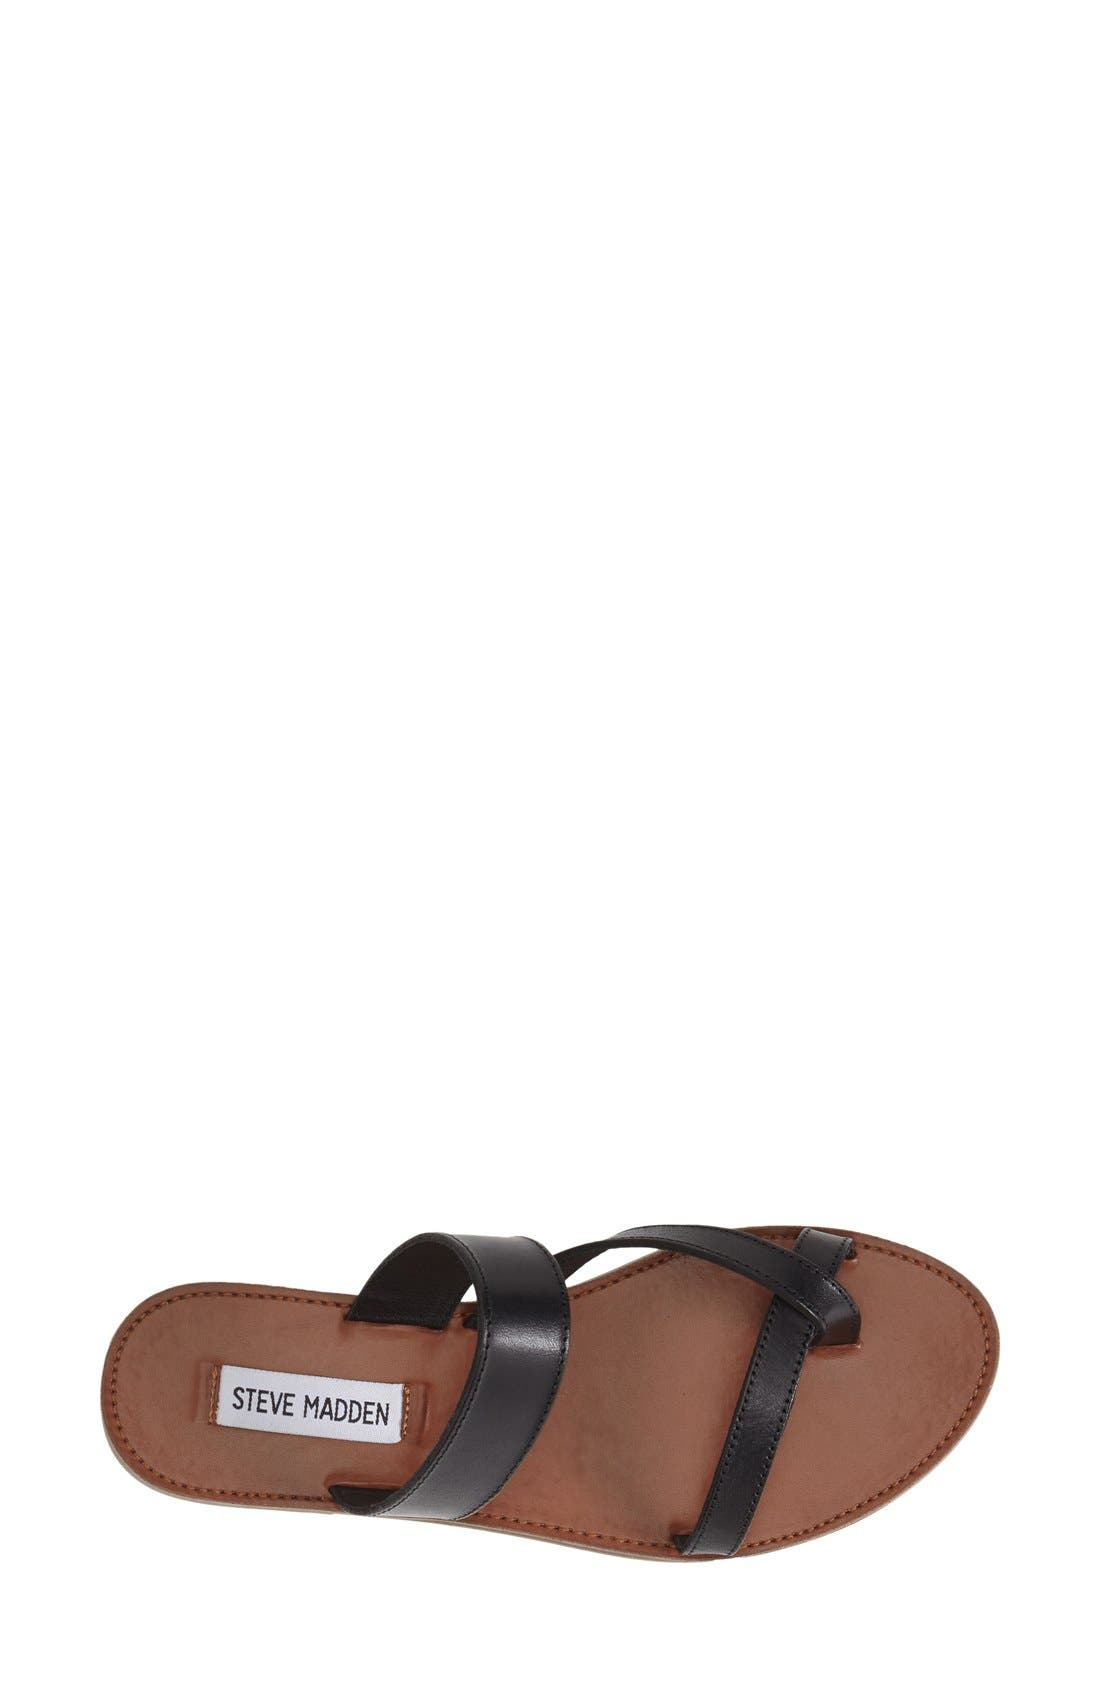 Alternate Image 3  - Steve Madden 'Aintso' Strappy Leather Toe Ring Sandal (Women)